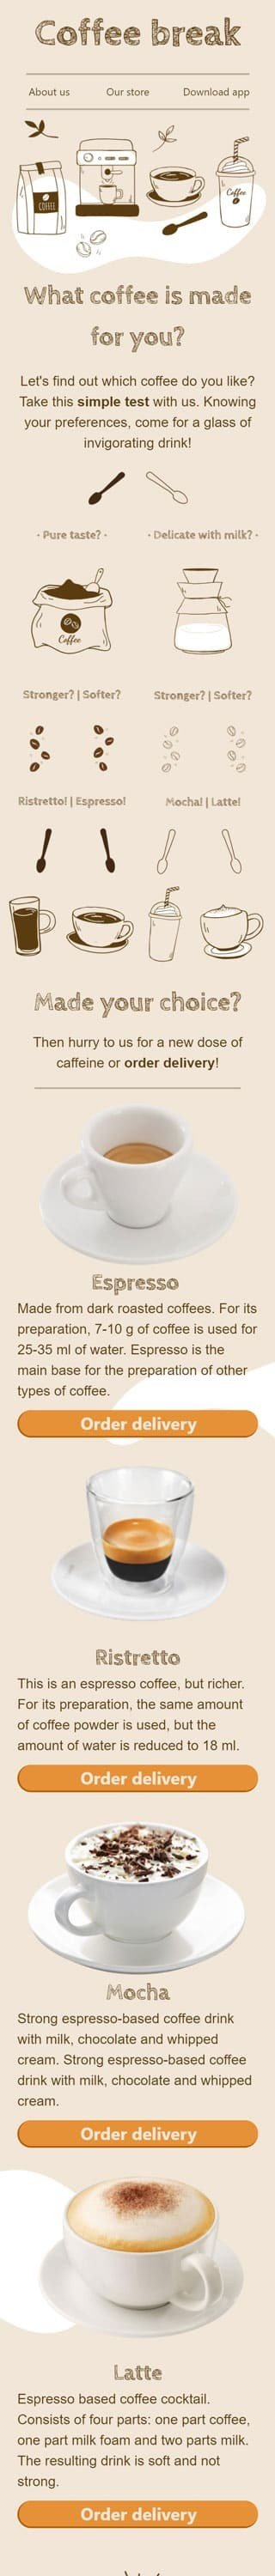 Promo Email Template «Choose your coffee» for Beverages industry mobile view